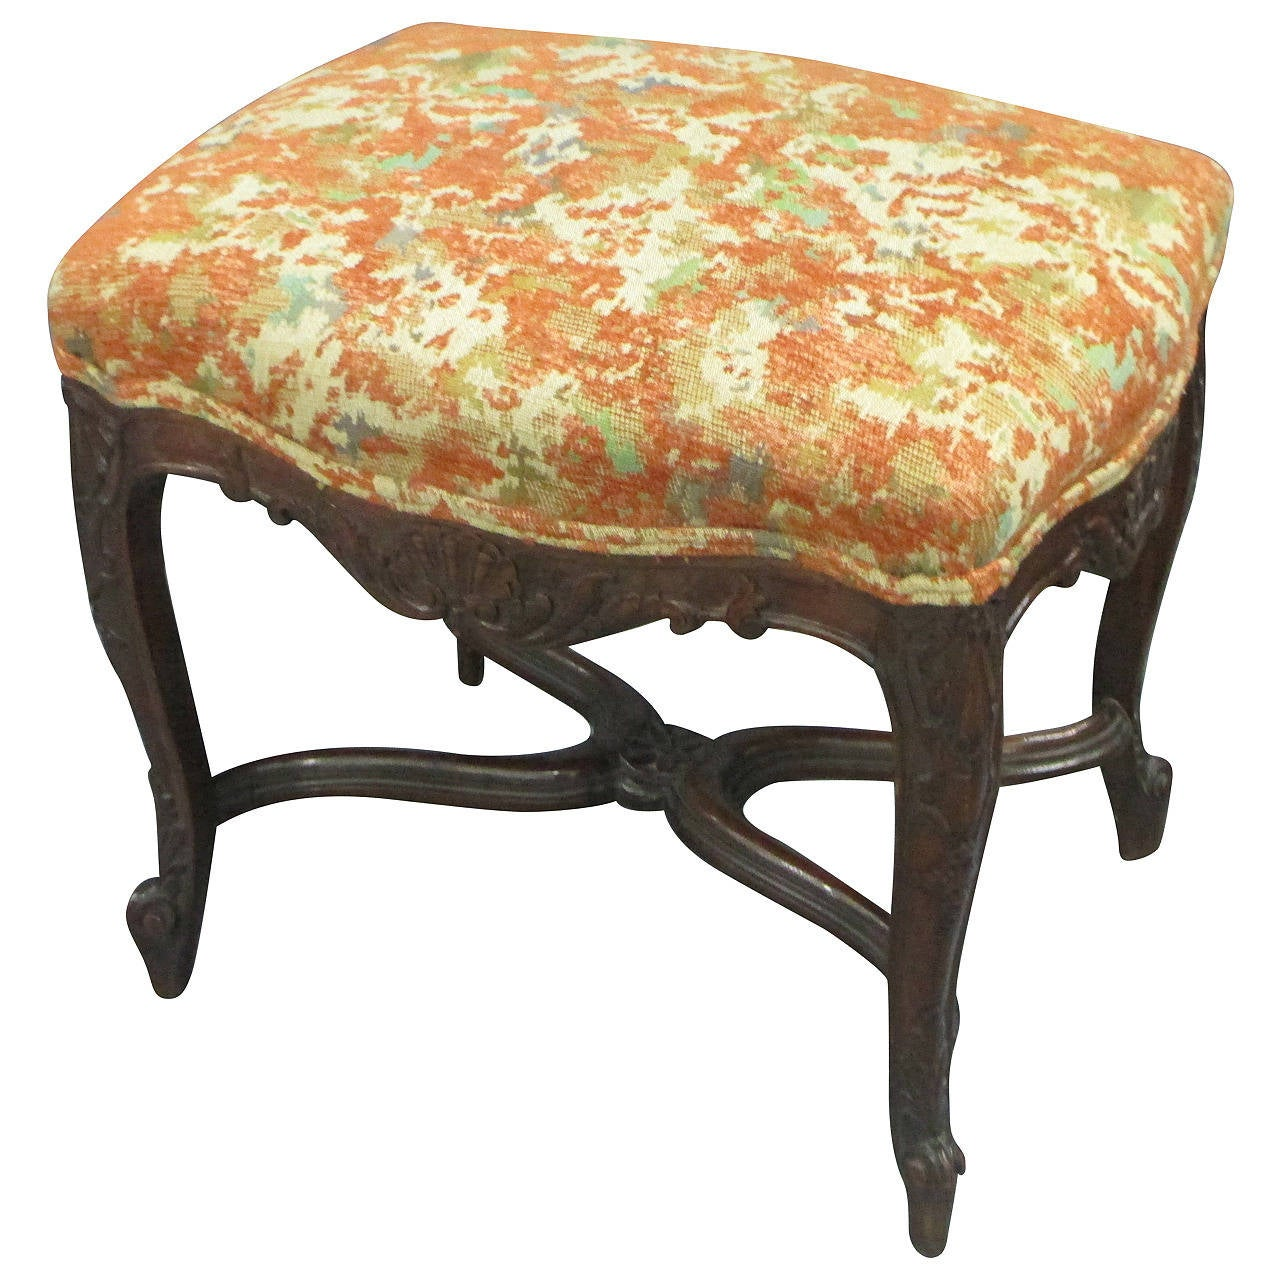 Regency Style Upholstered Bench